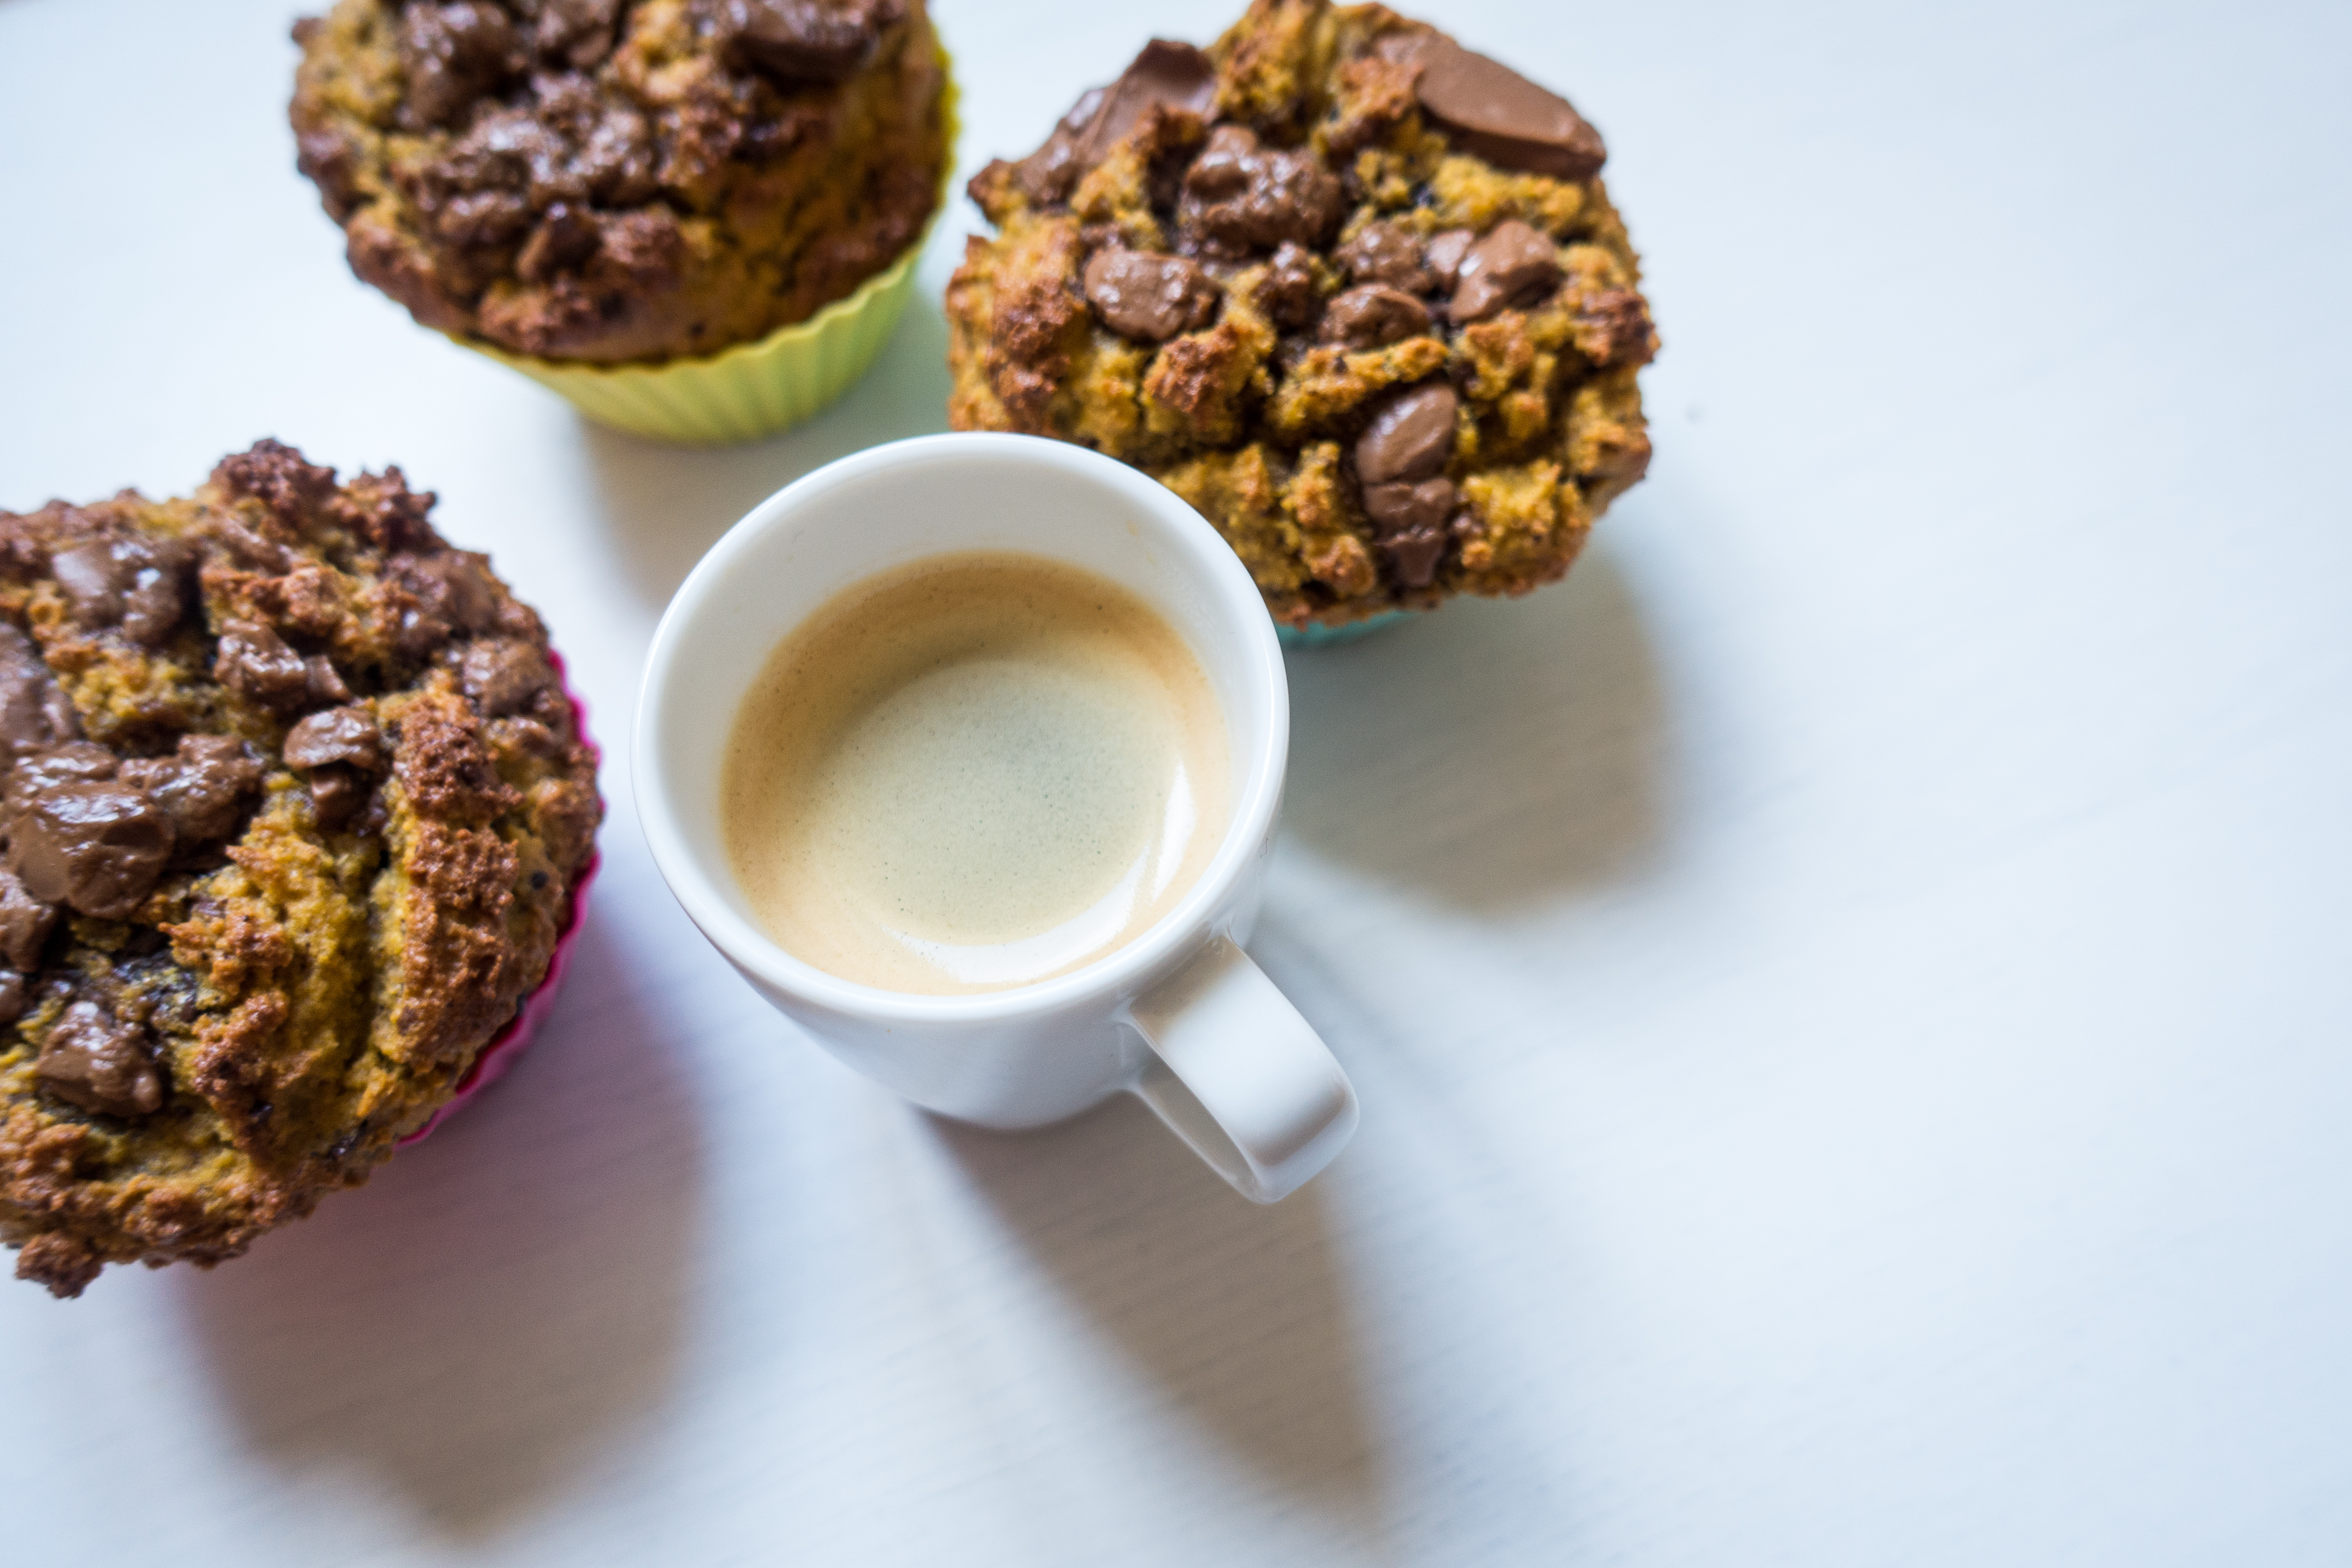 Coffee espresso with homemade chocolate muffins